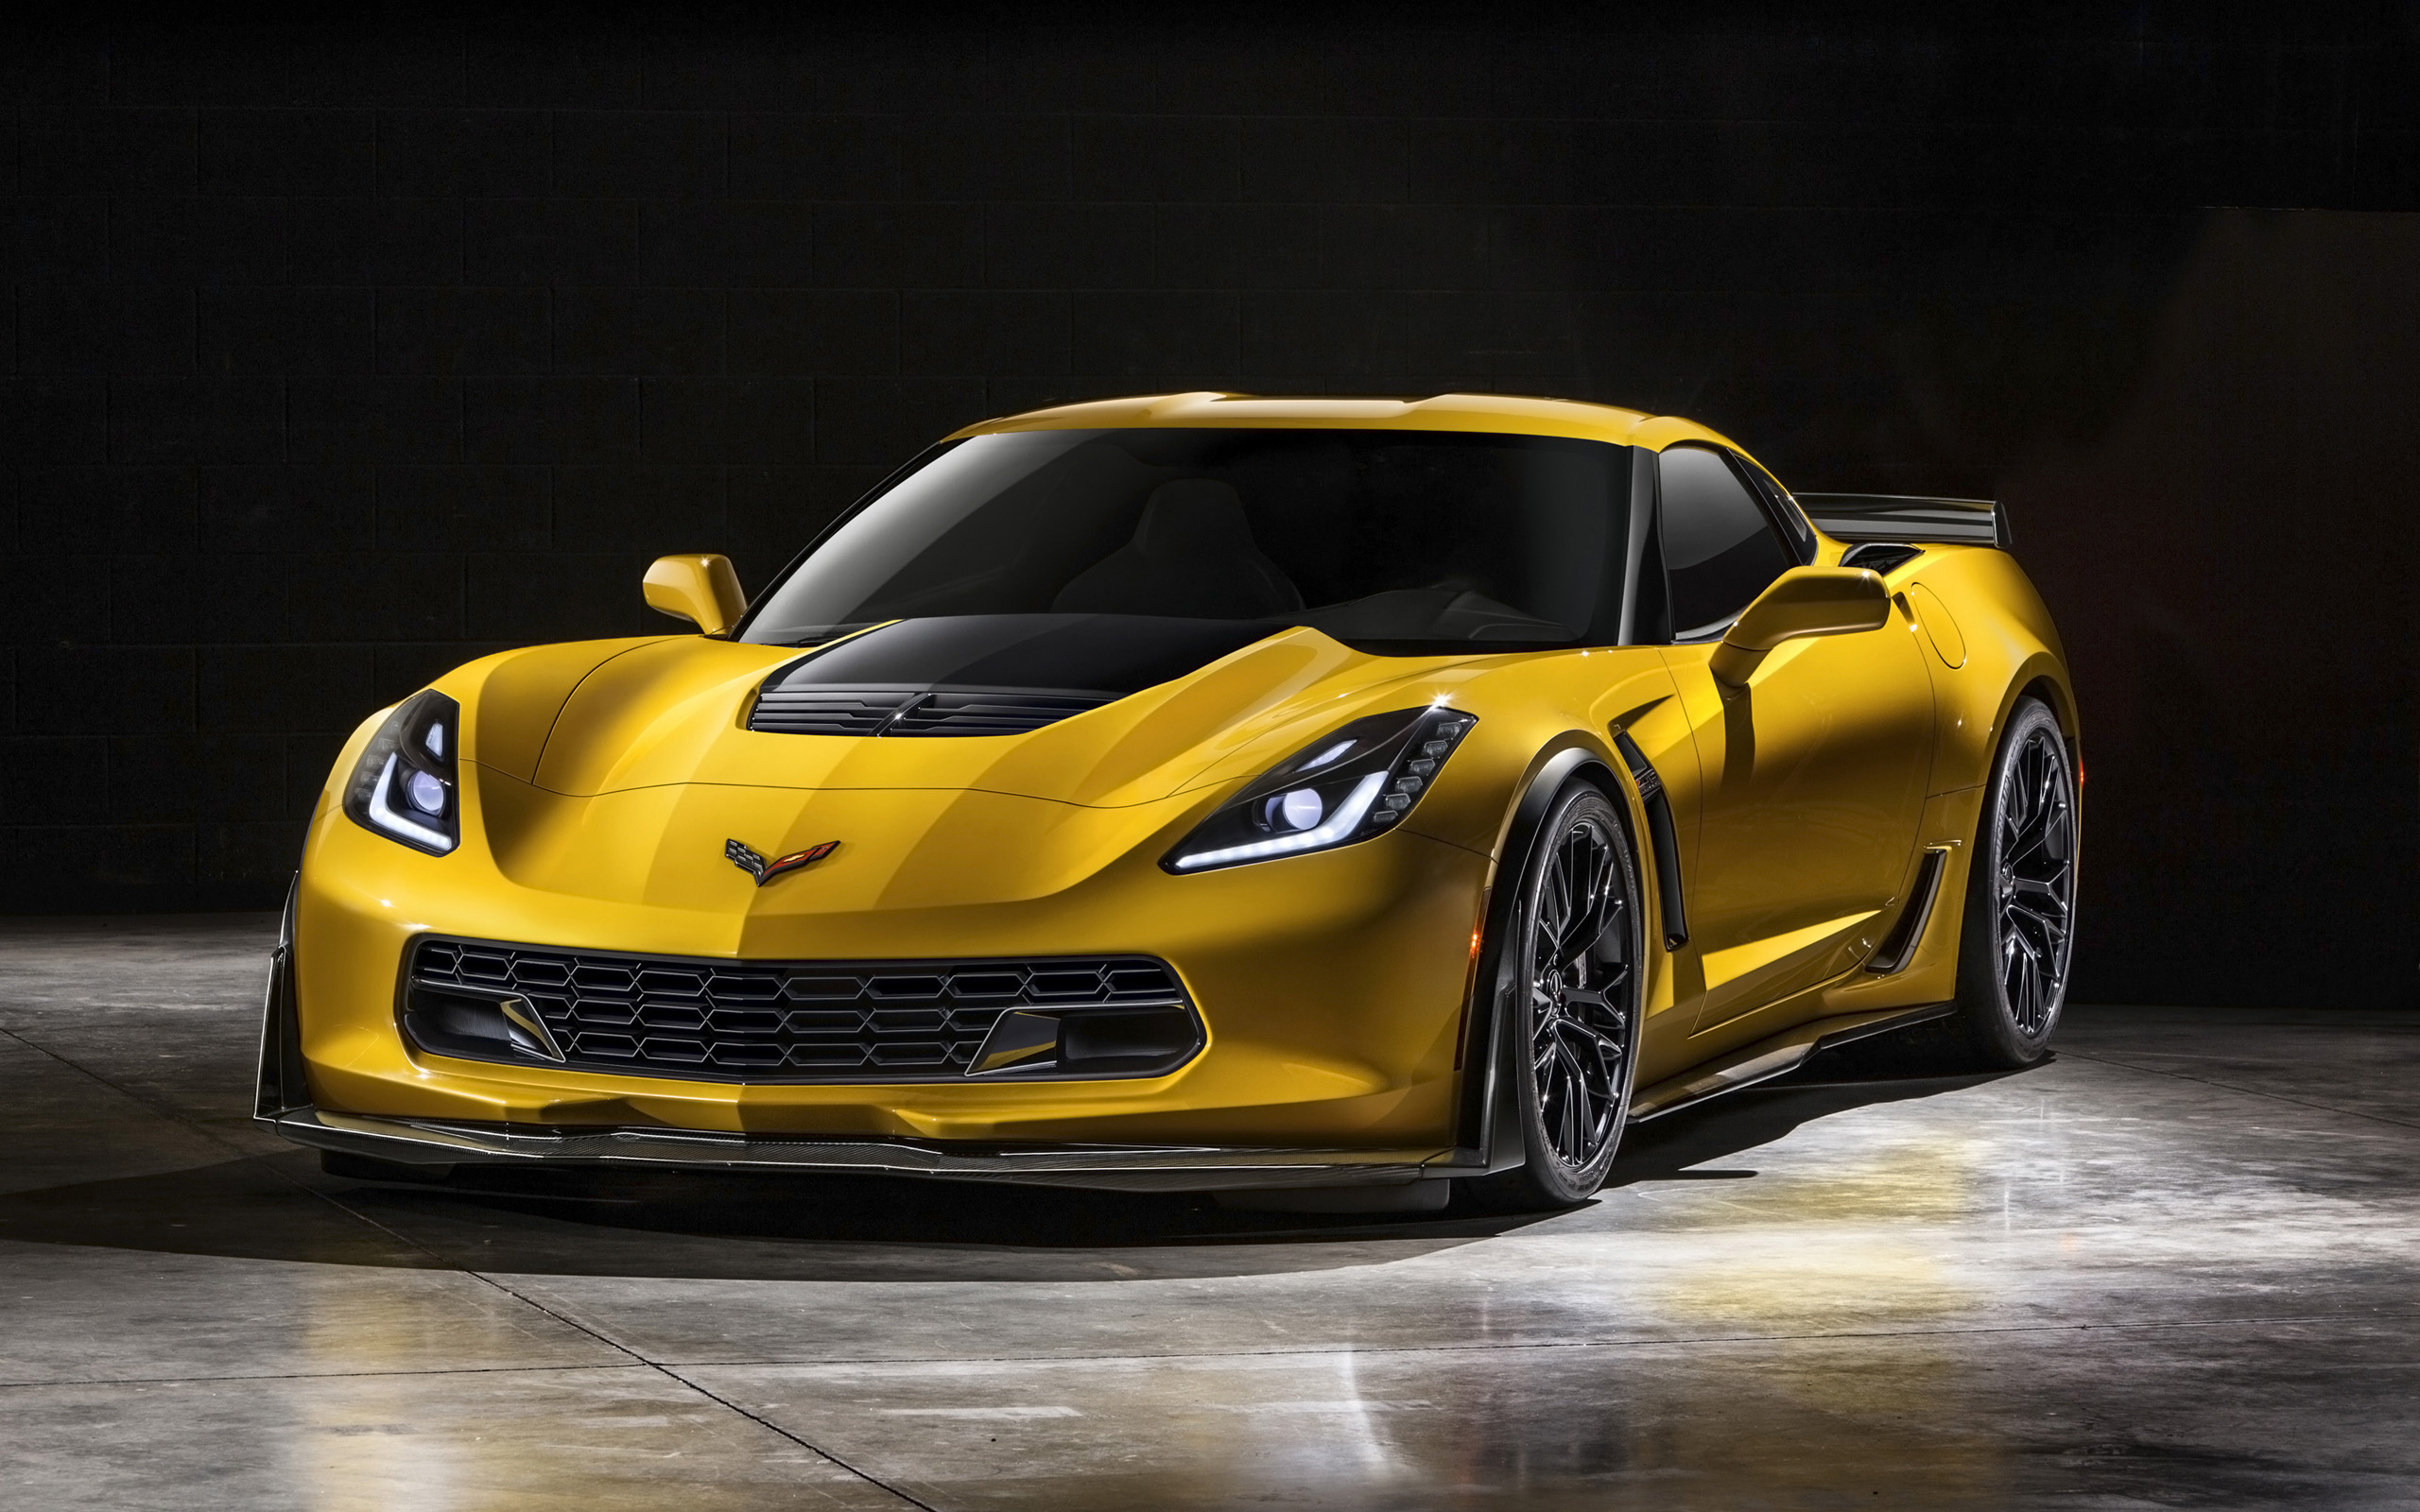 2015 Chevrolet Corvette Z06 Wallpaper HD Car Wallpapers 2560x1600